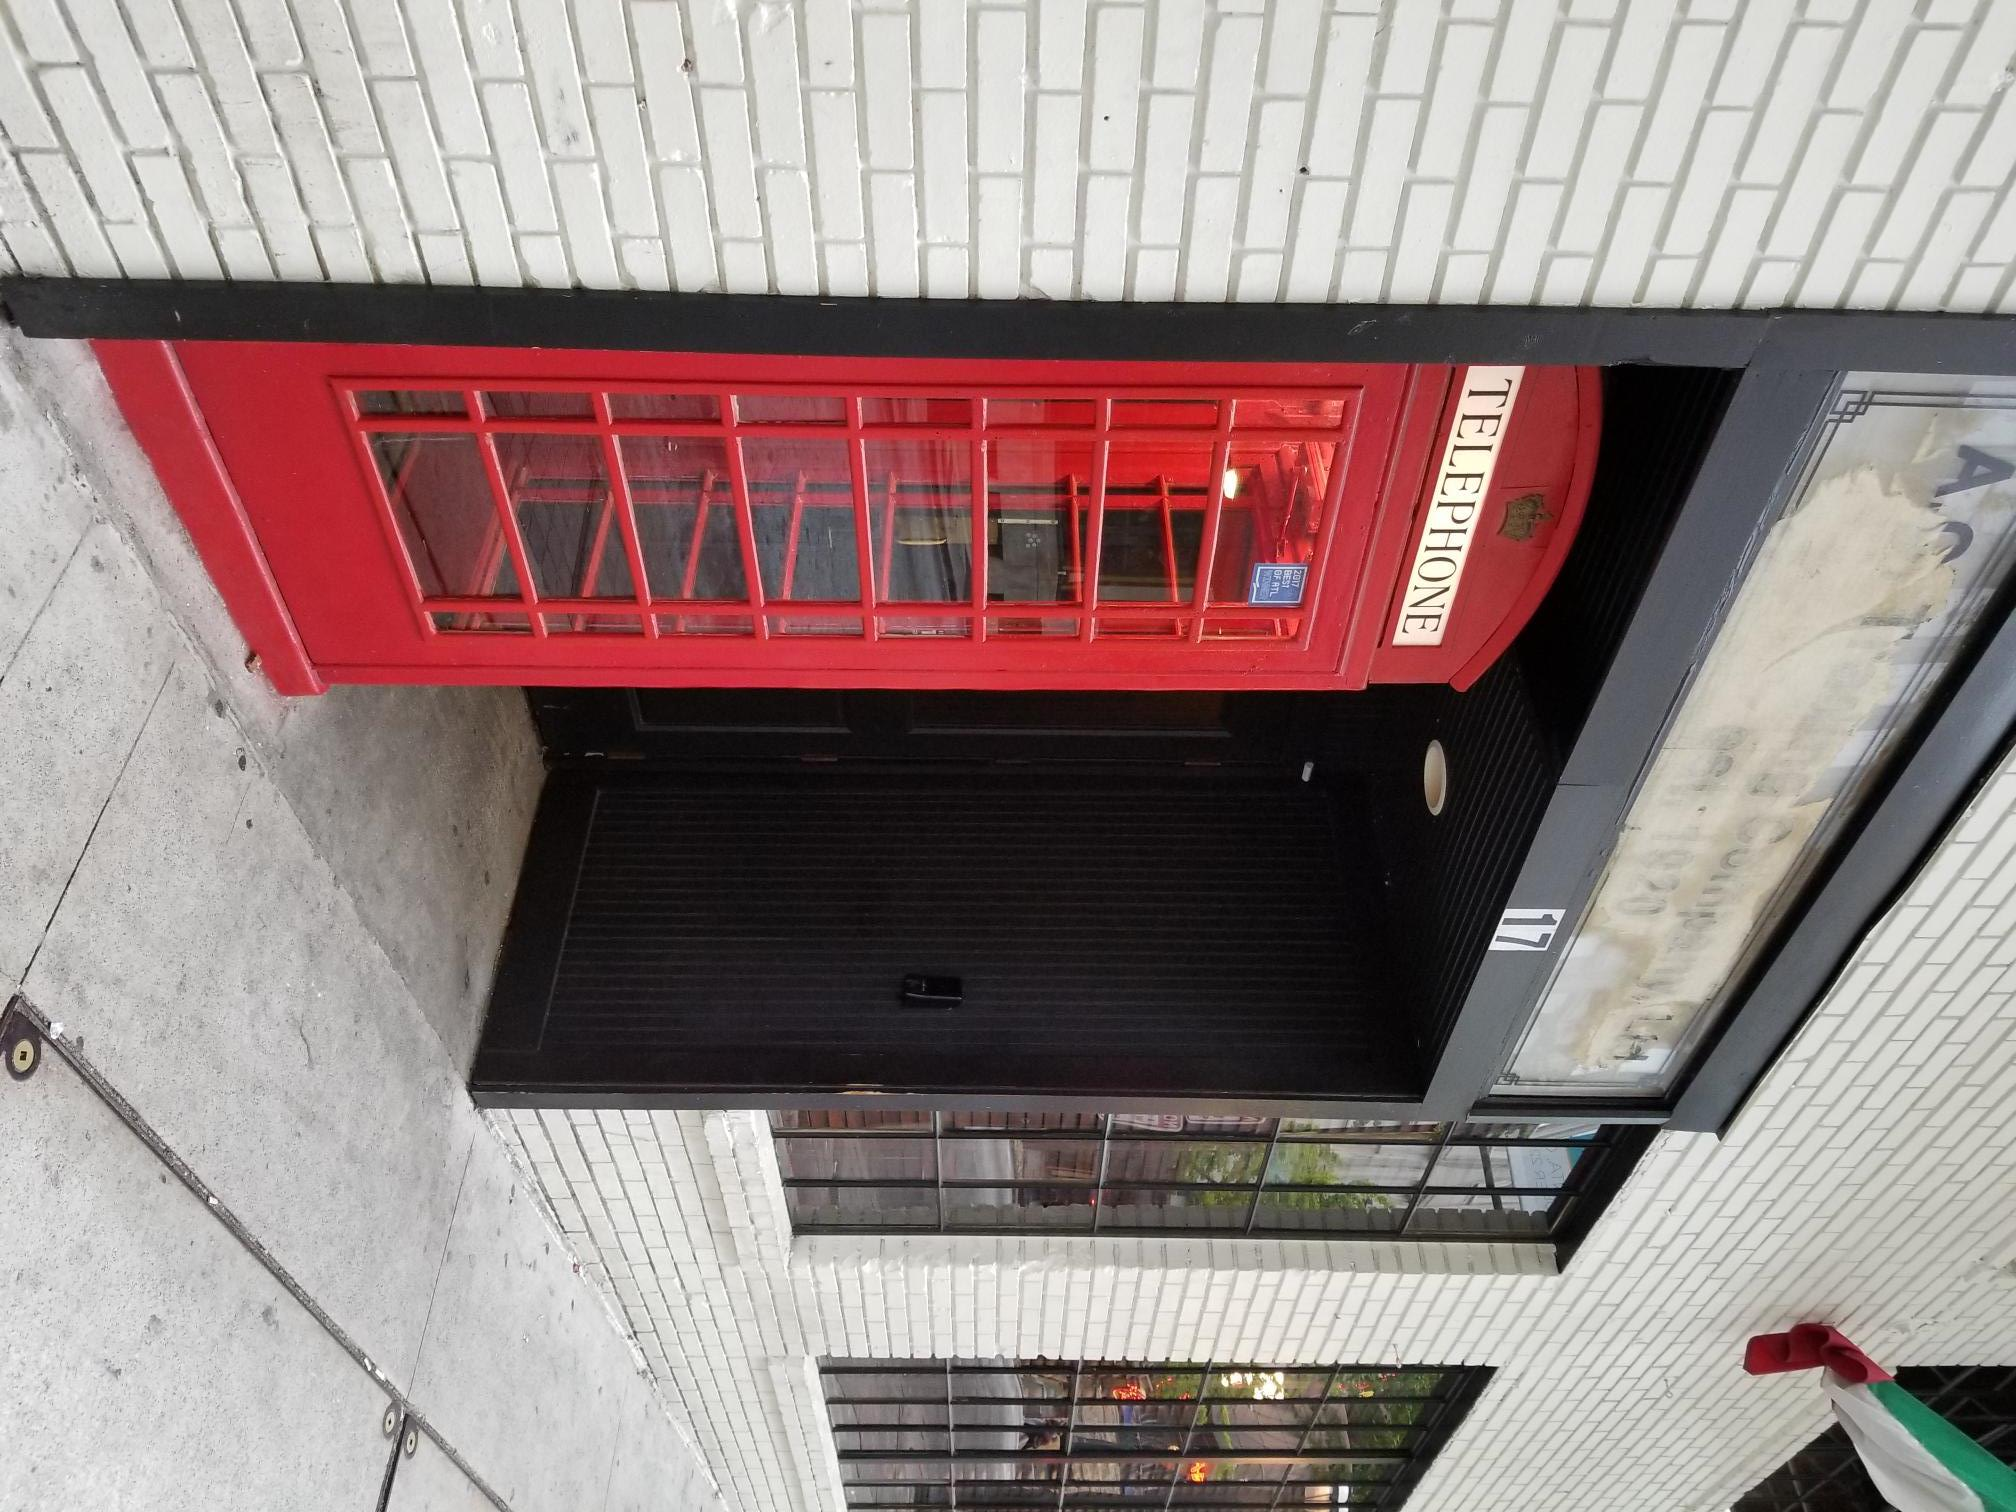 Old World Nostalgia Meets New World Chic at Red Phone Booth